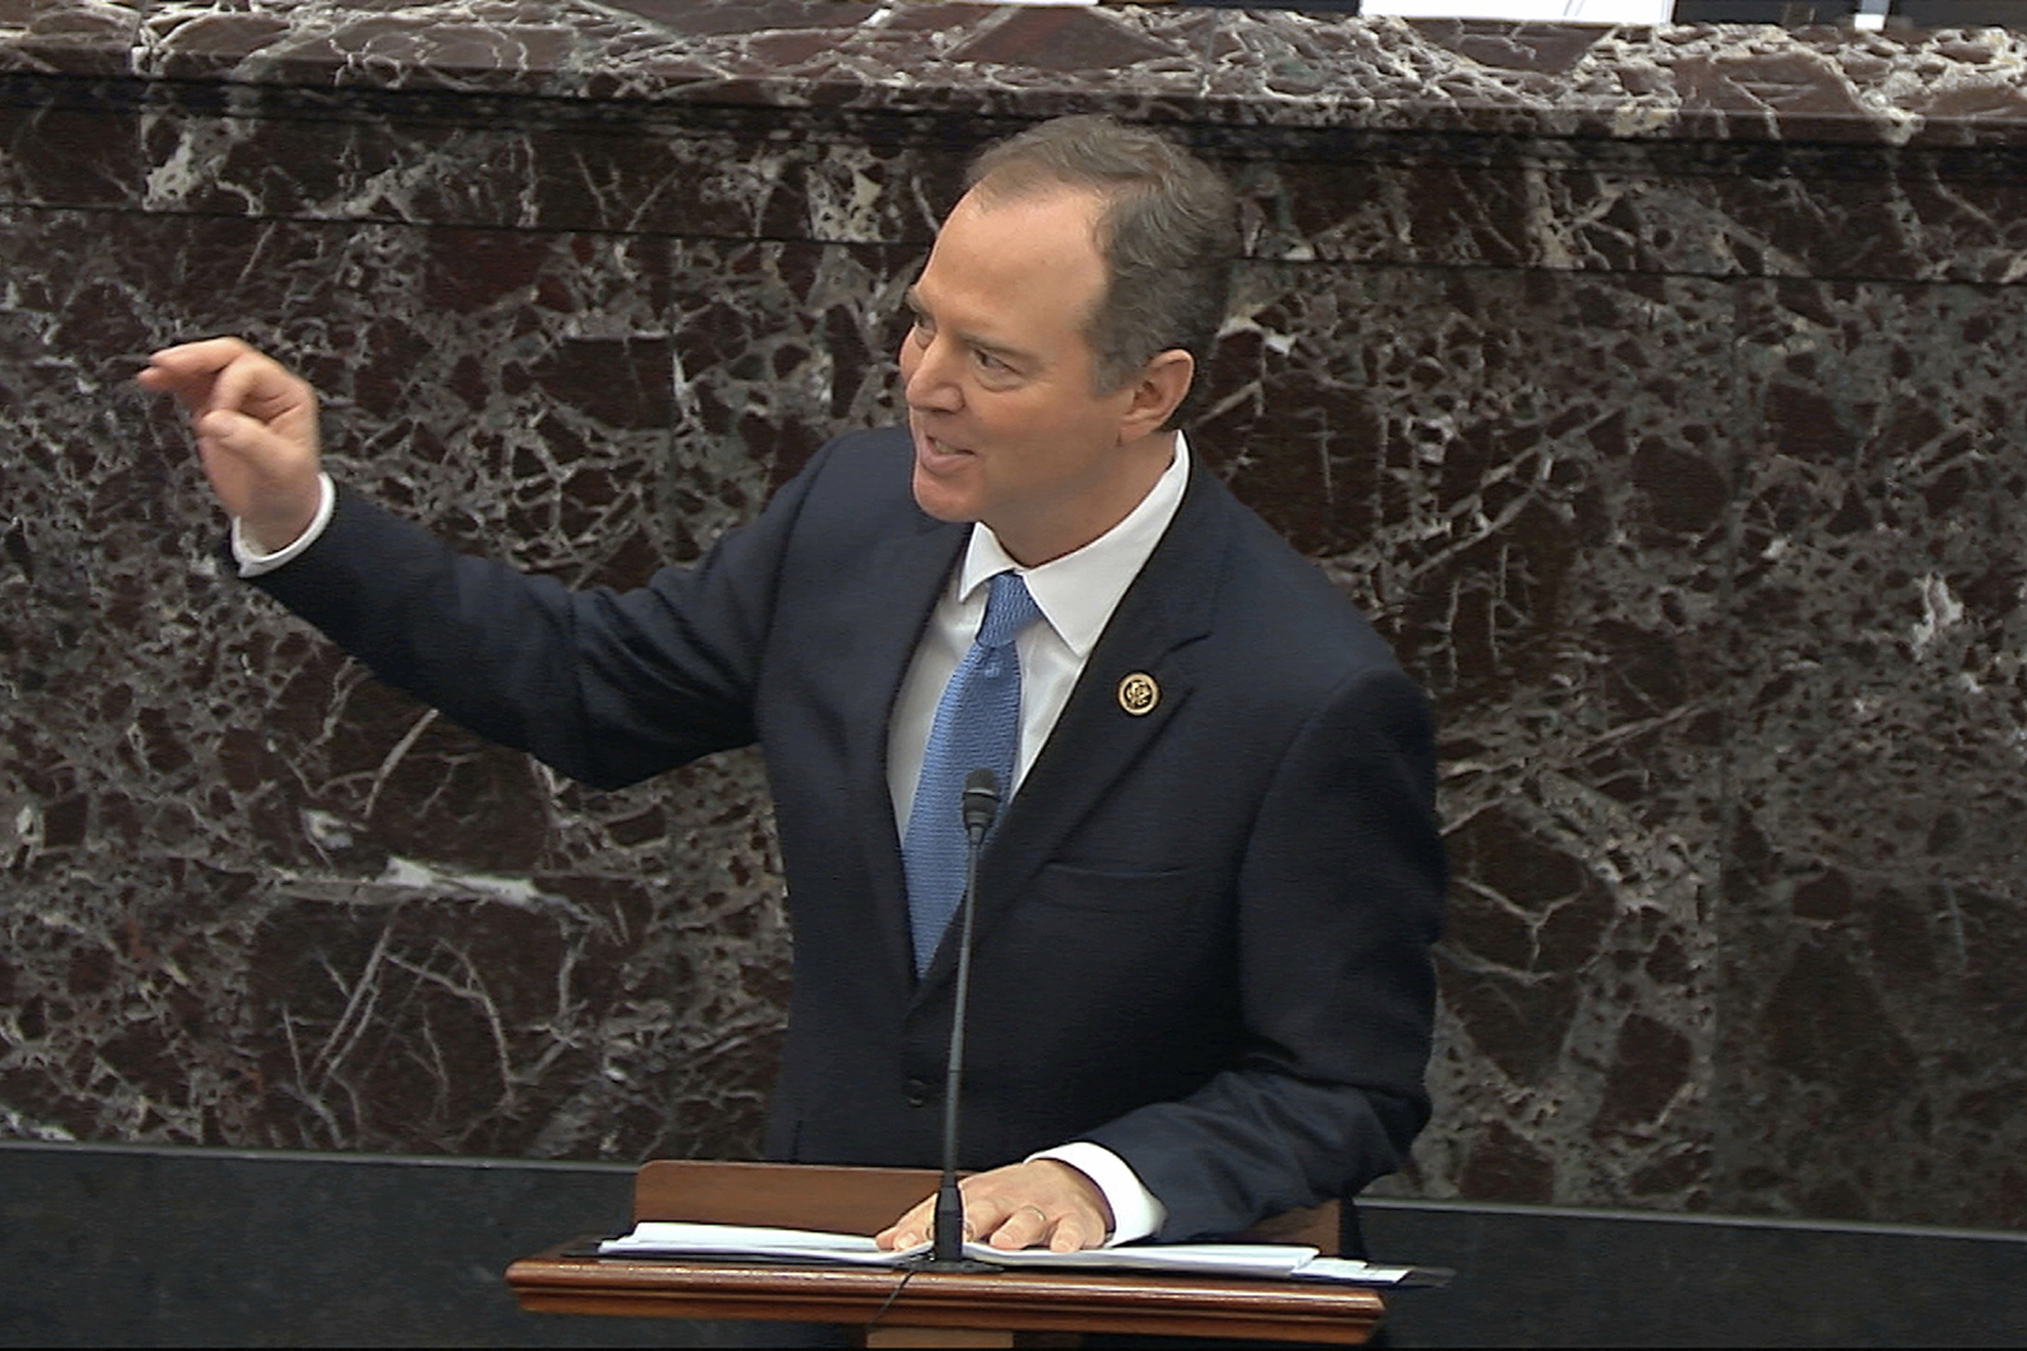 House impeachment manager Rep. Adam Schiff speaks during the impeachment trial against President Donald Trump in the Senate at the U.S. Capitol in Washington, Jan. 23, 2020.